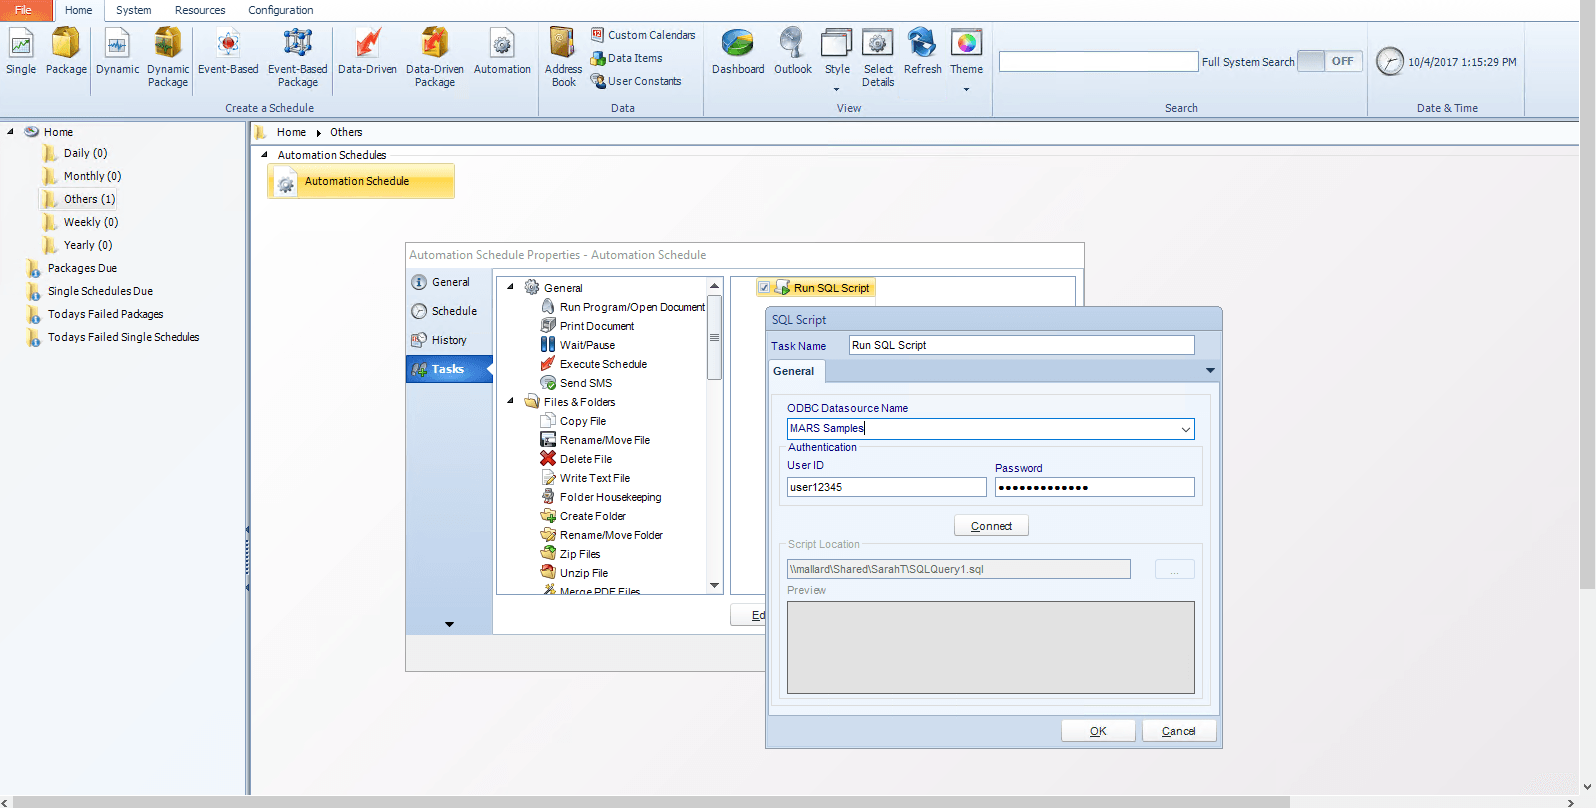 How to Run SQL Scripts with MS Access